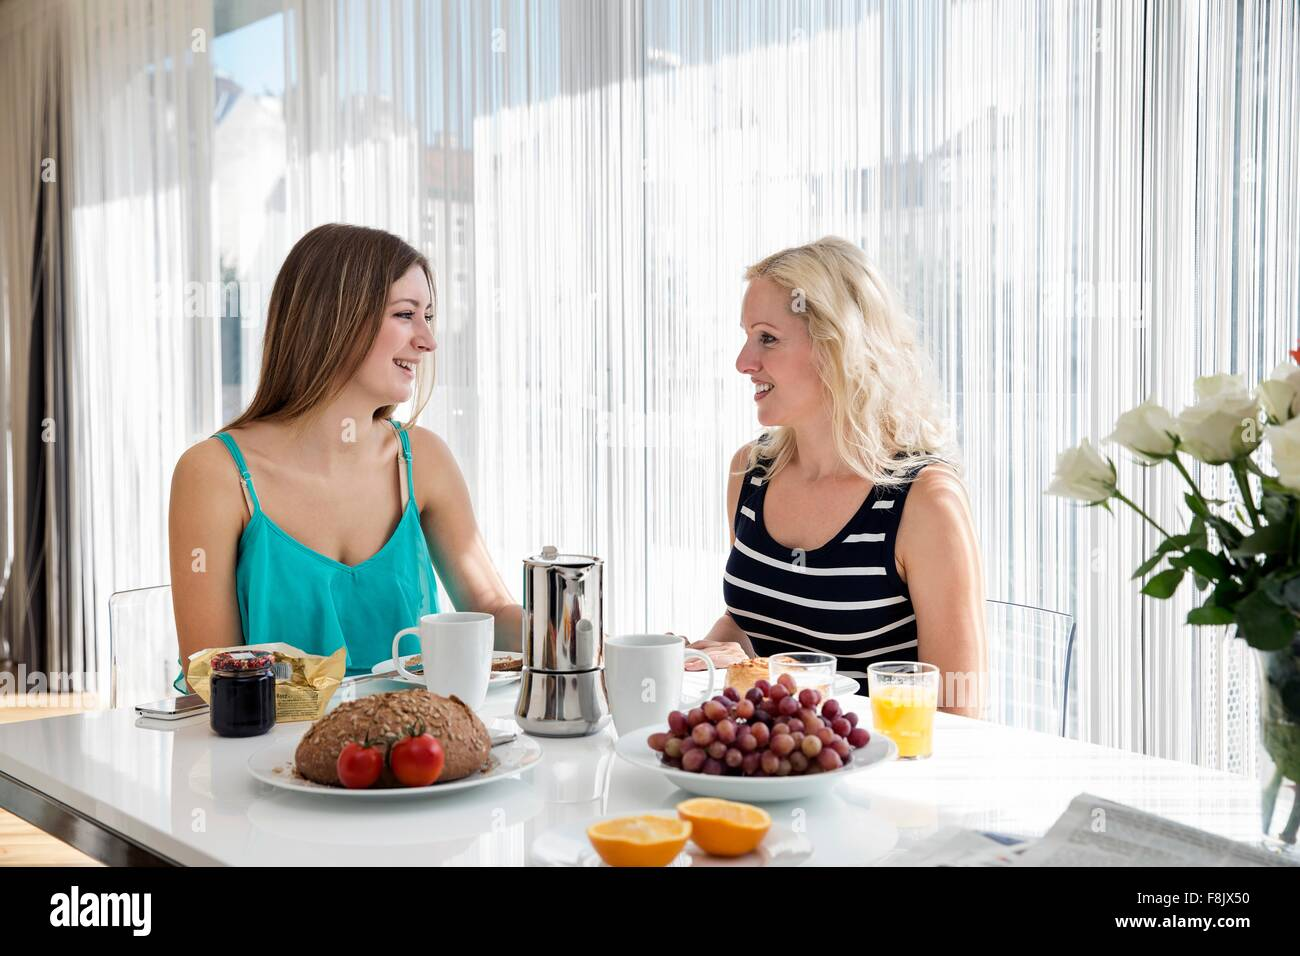 Women sitting at dining table enjoying a continental breakfast together, face to face smiling - Stock Image